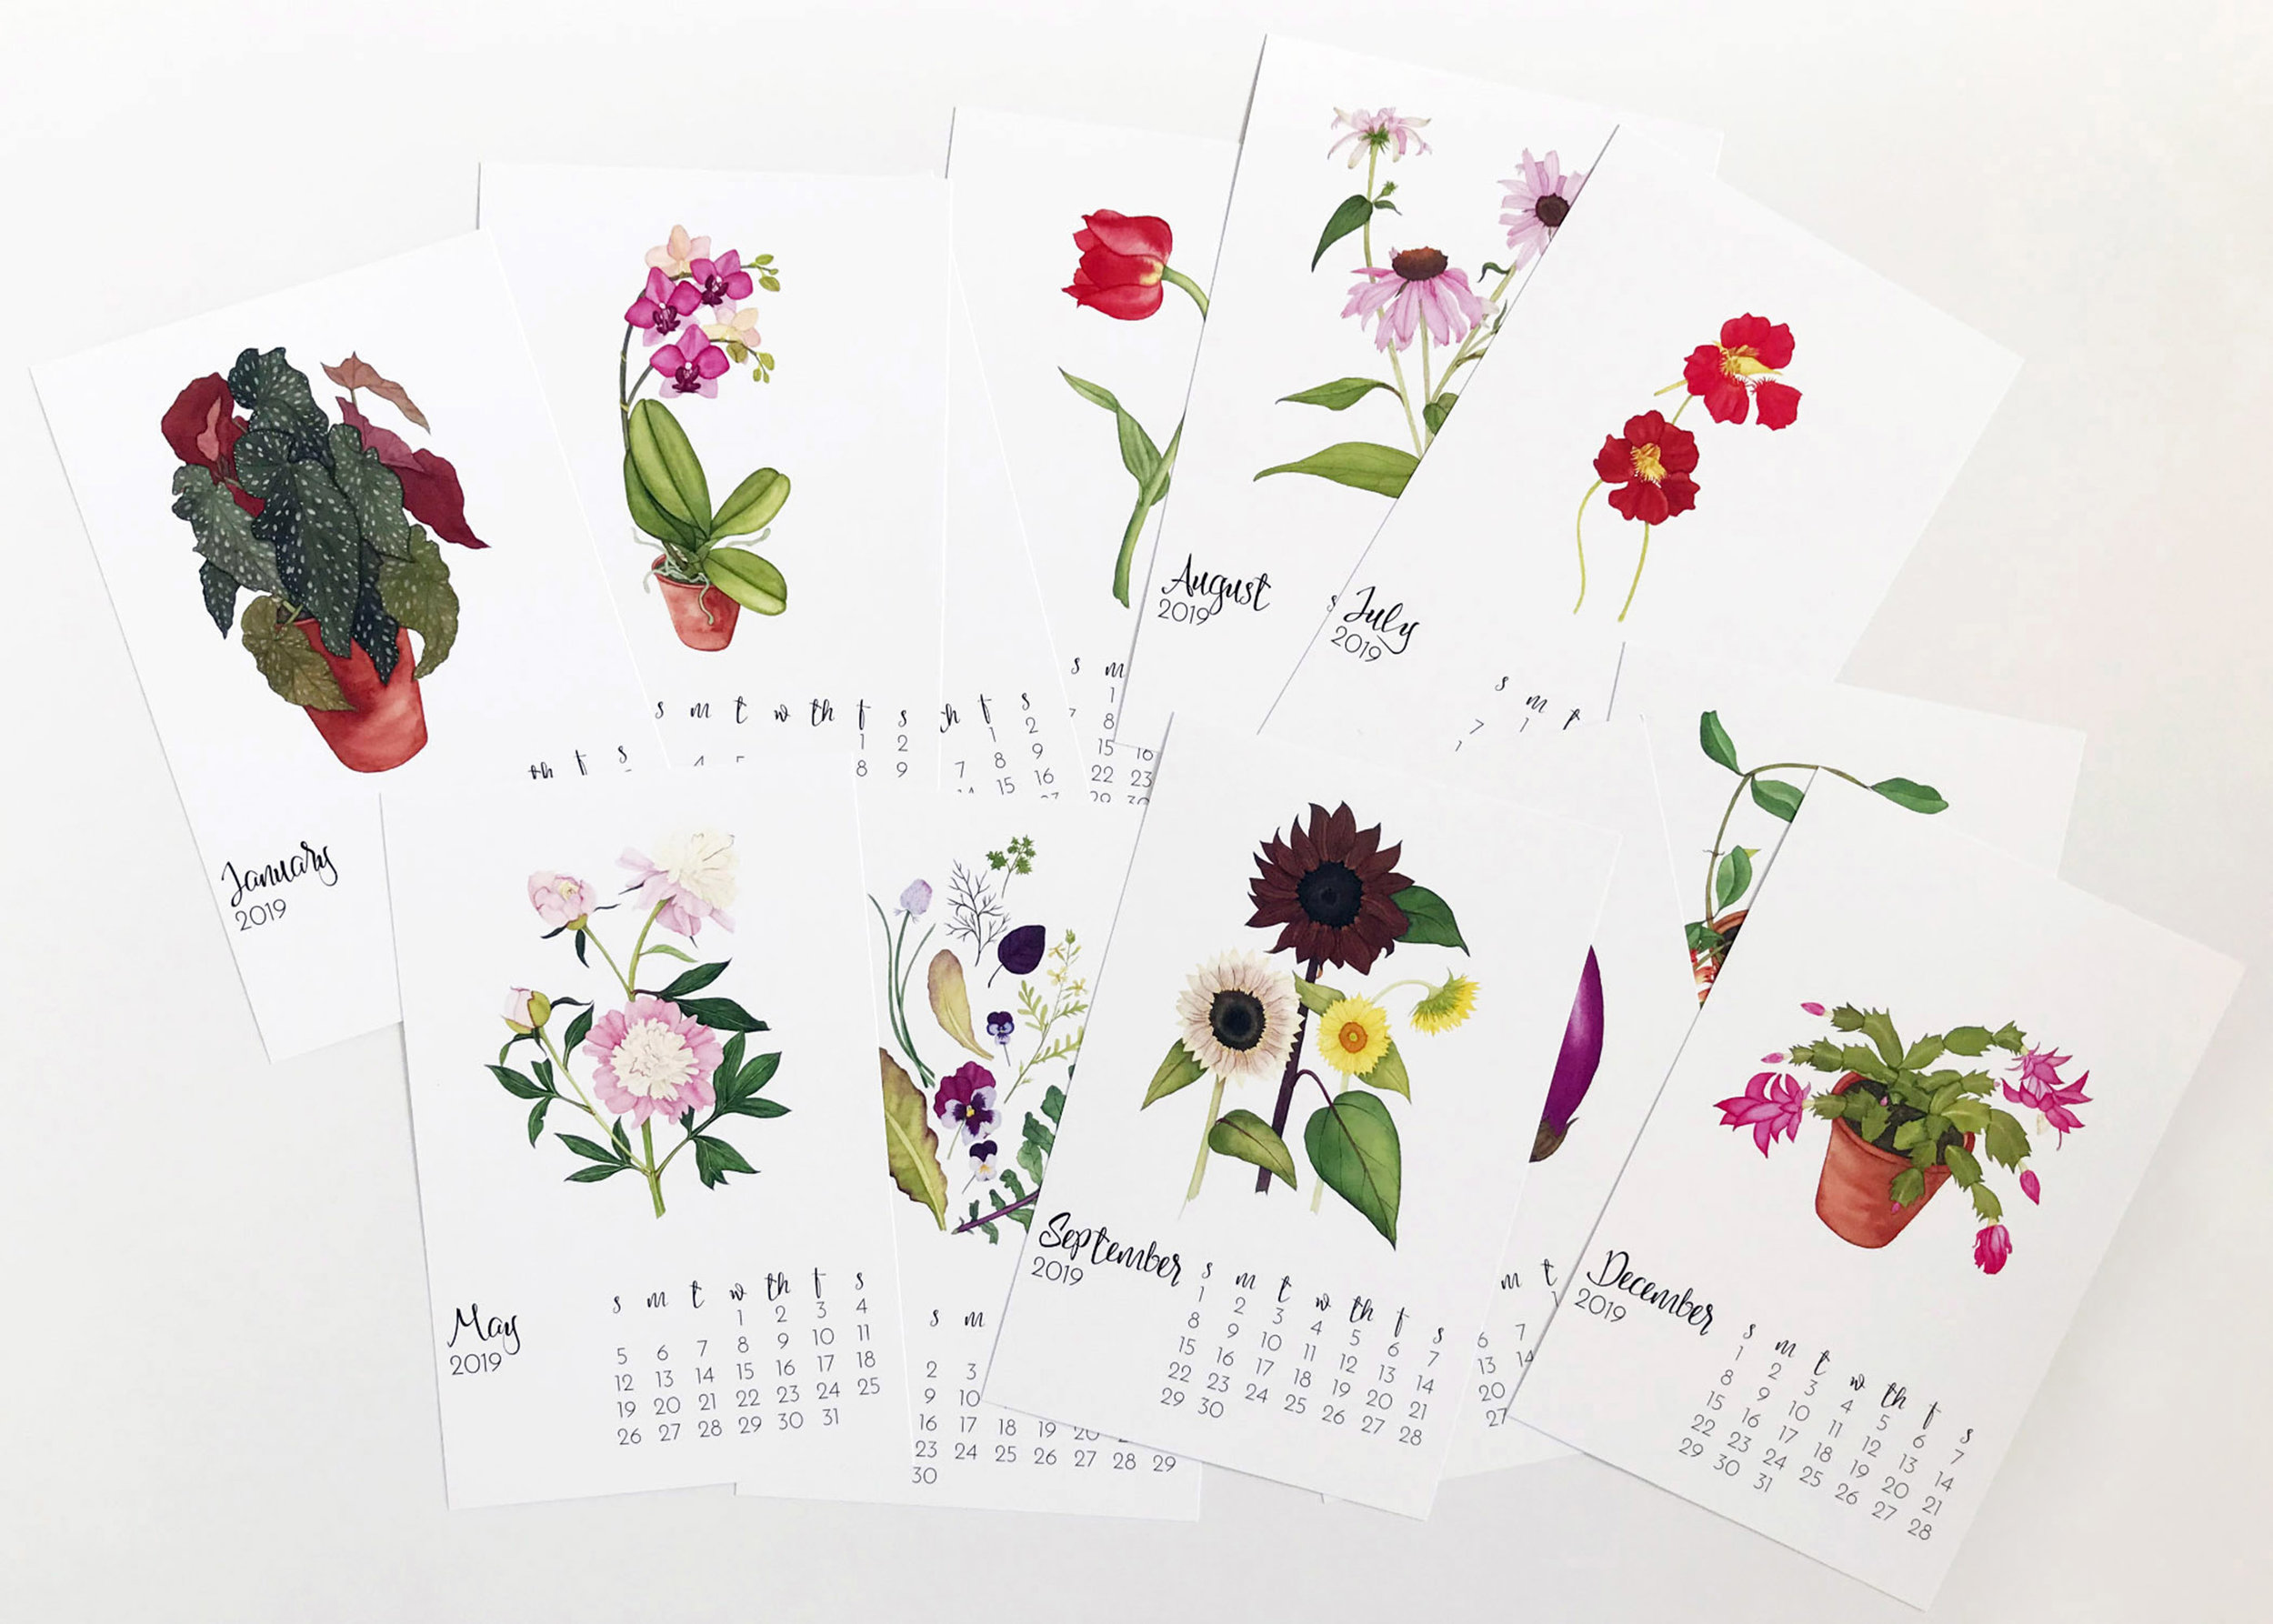 The 2019 Botanical Watercolor Calendar by Anne Butera of My Giant Strawberry